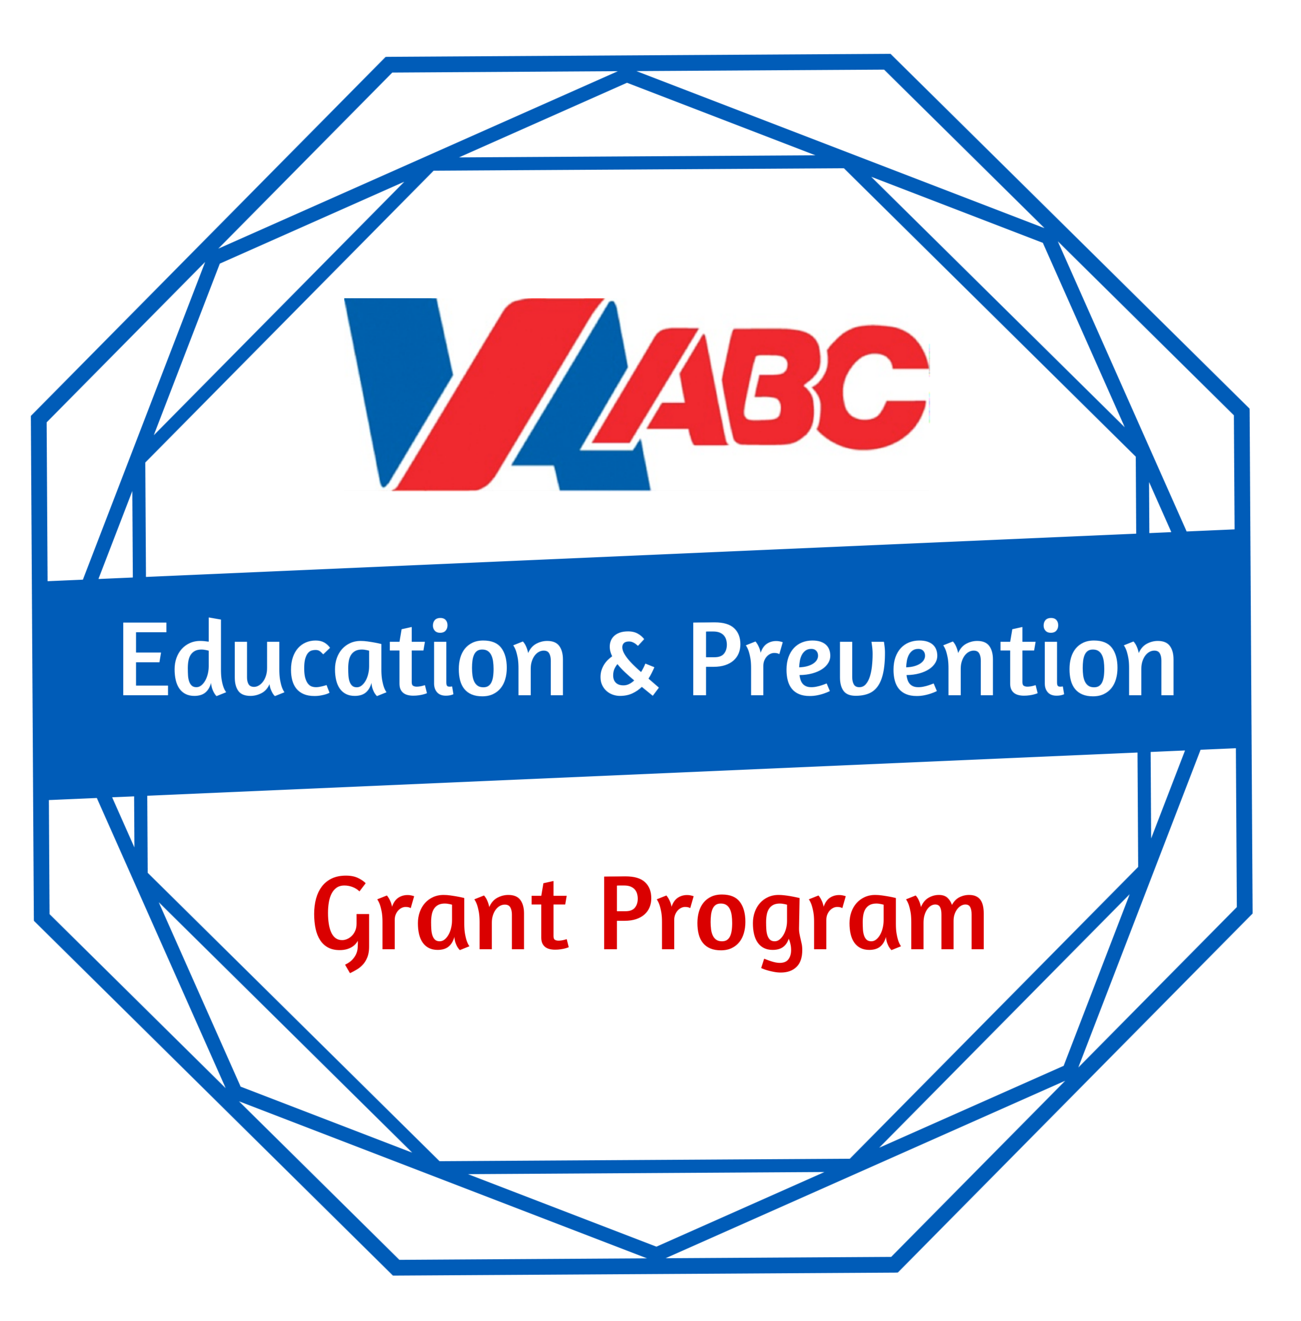 VABC Education and Prevention Grant Program logo